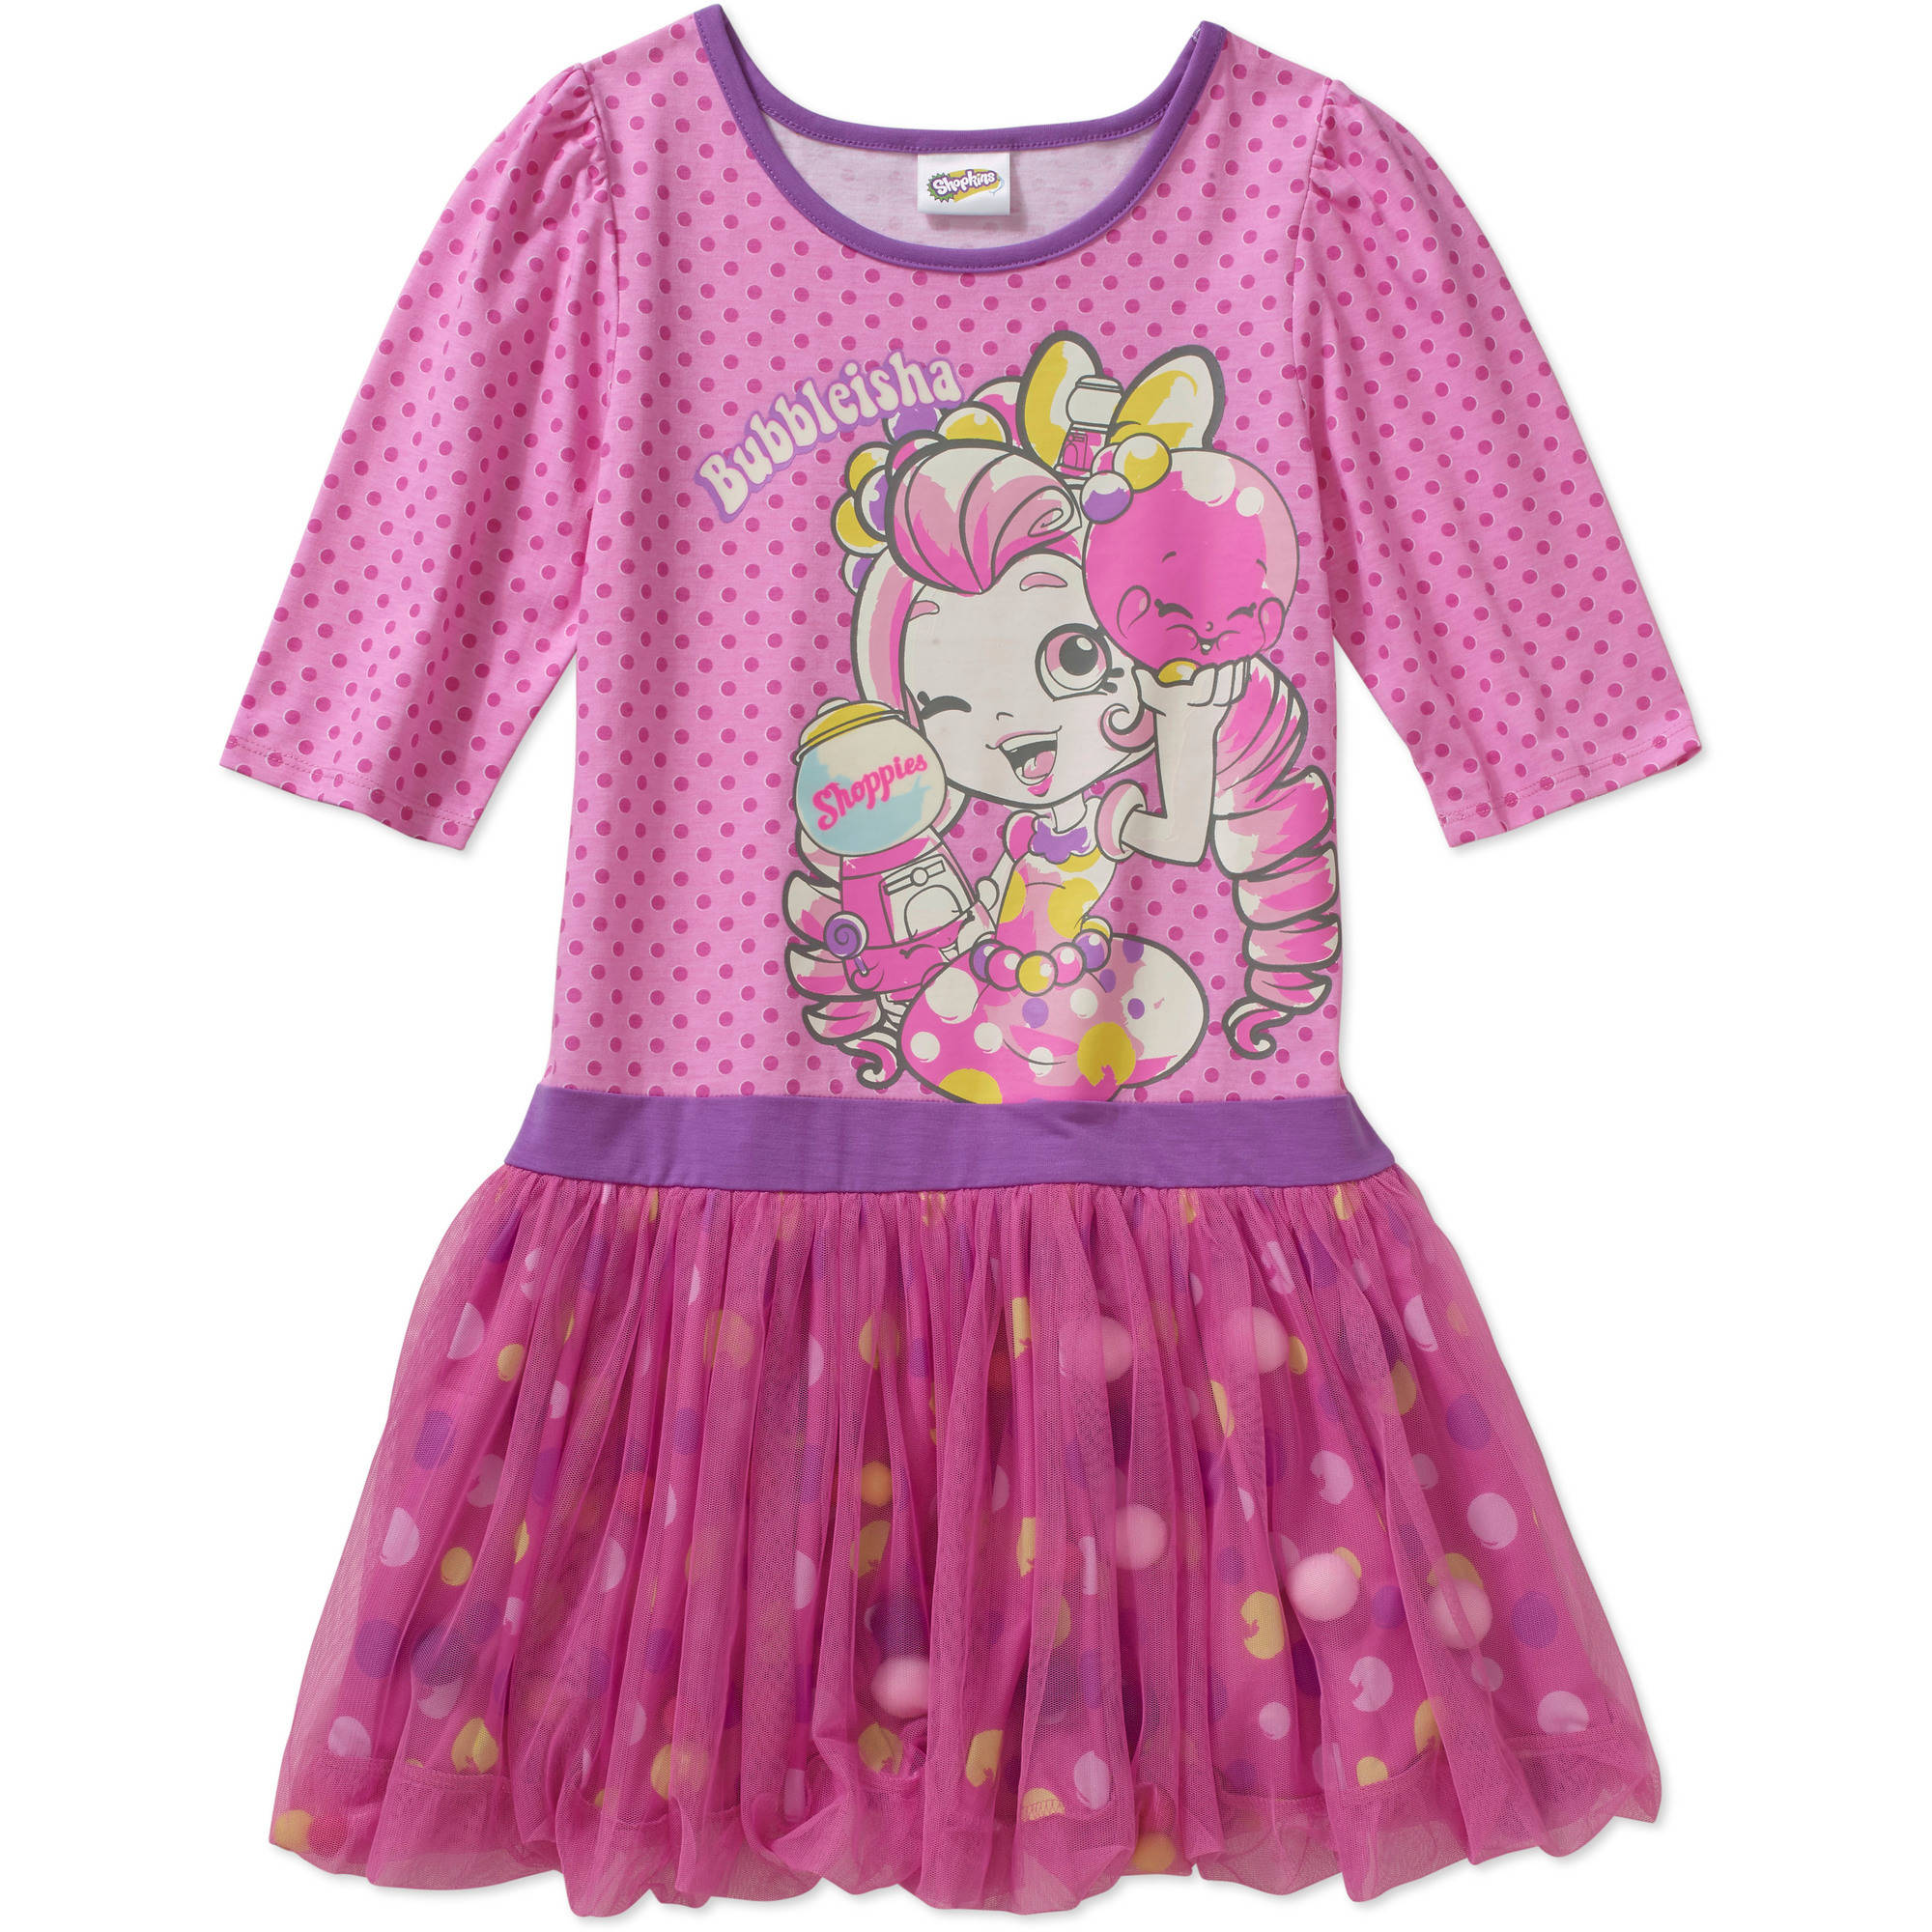 Shoppies Girls Bubblisha Dress Walmart